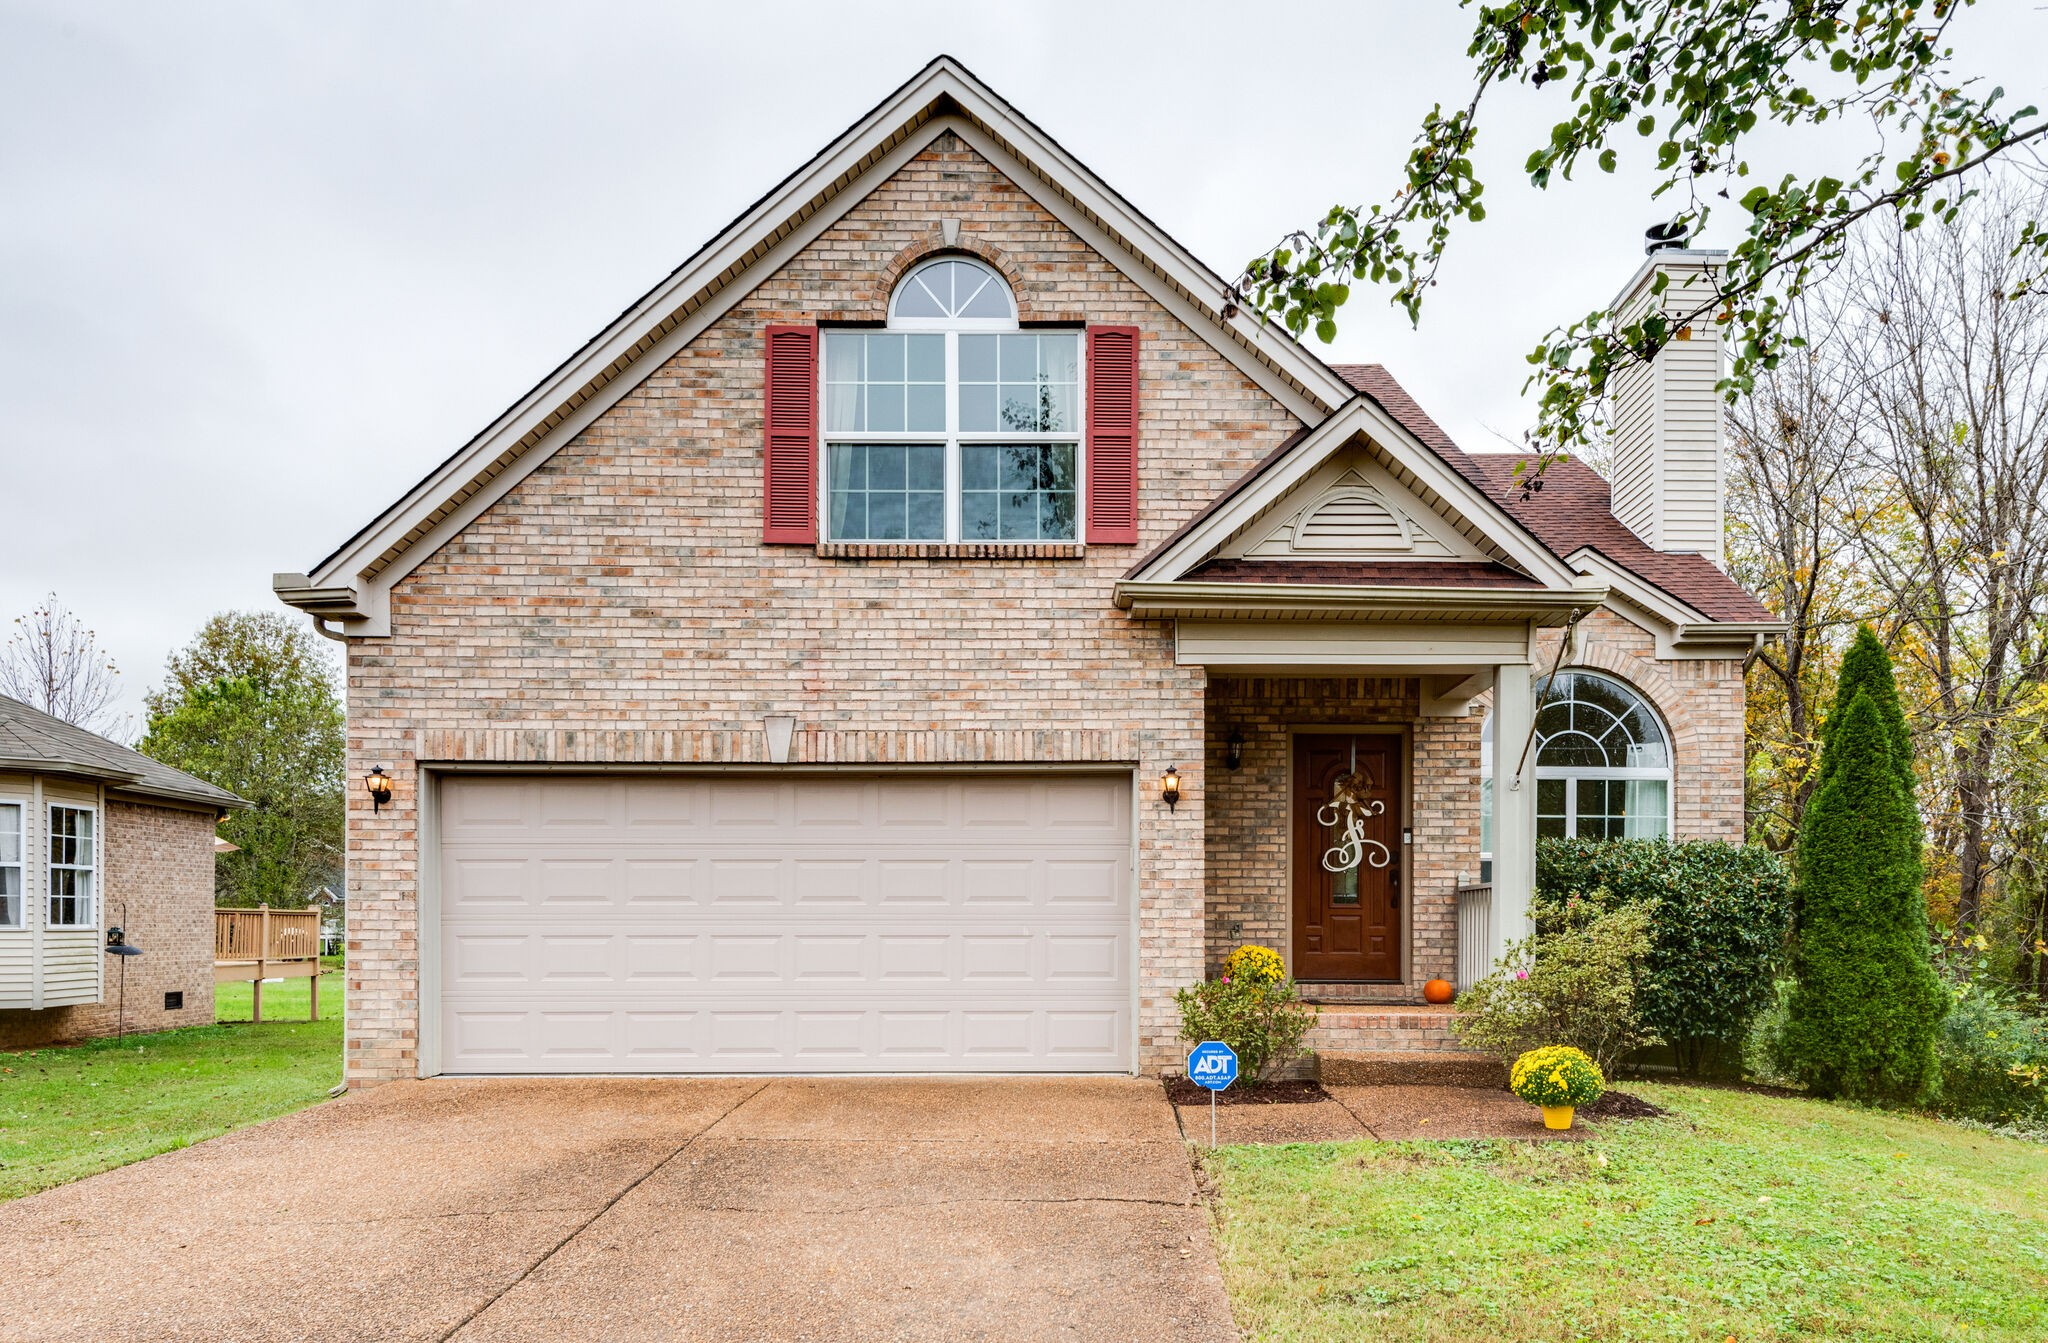 8009 Boone Trce Property Photo - Nashville, TN real estate listing